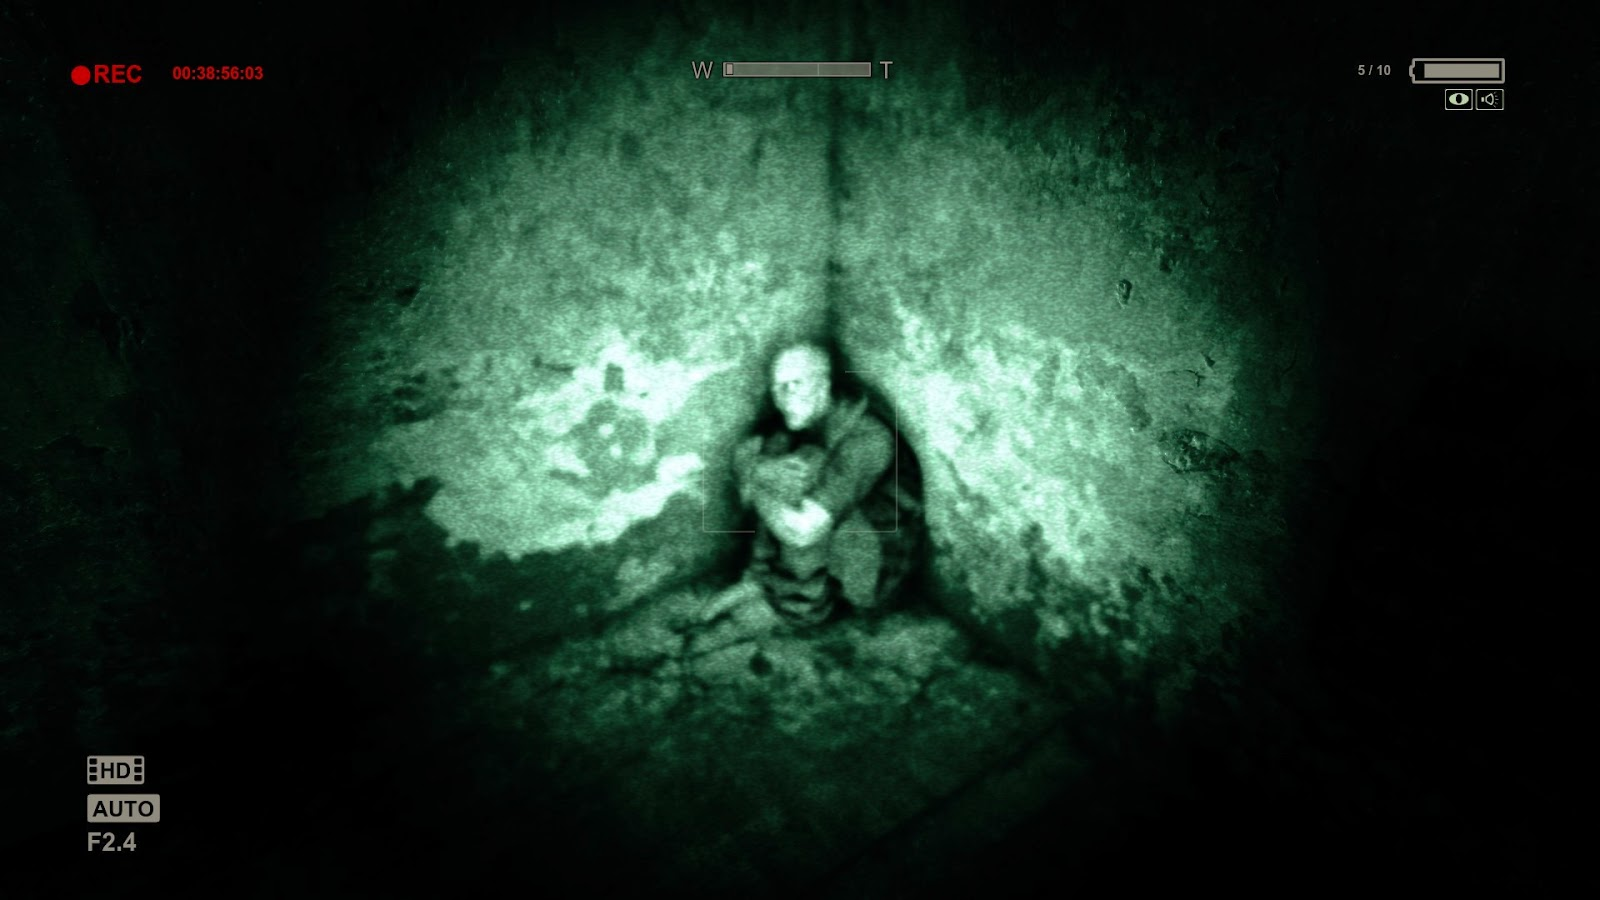 Outlast pc game review picture of man huddled in corner in nightvision mode